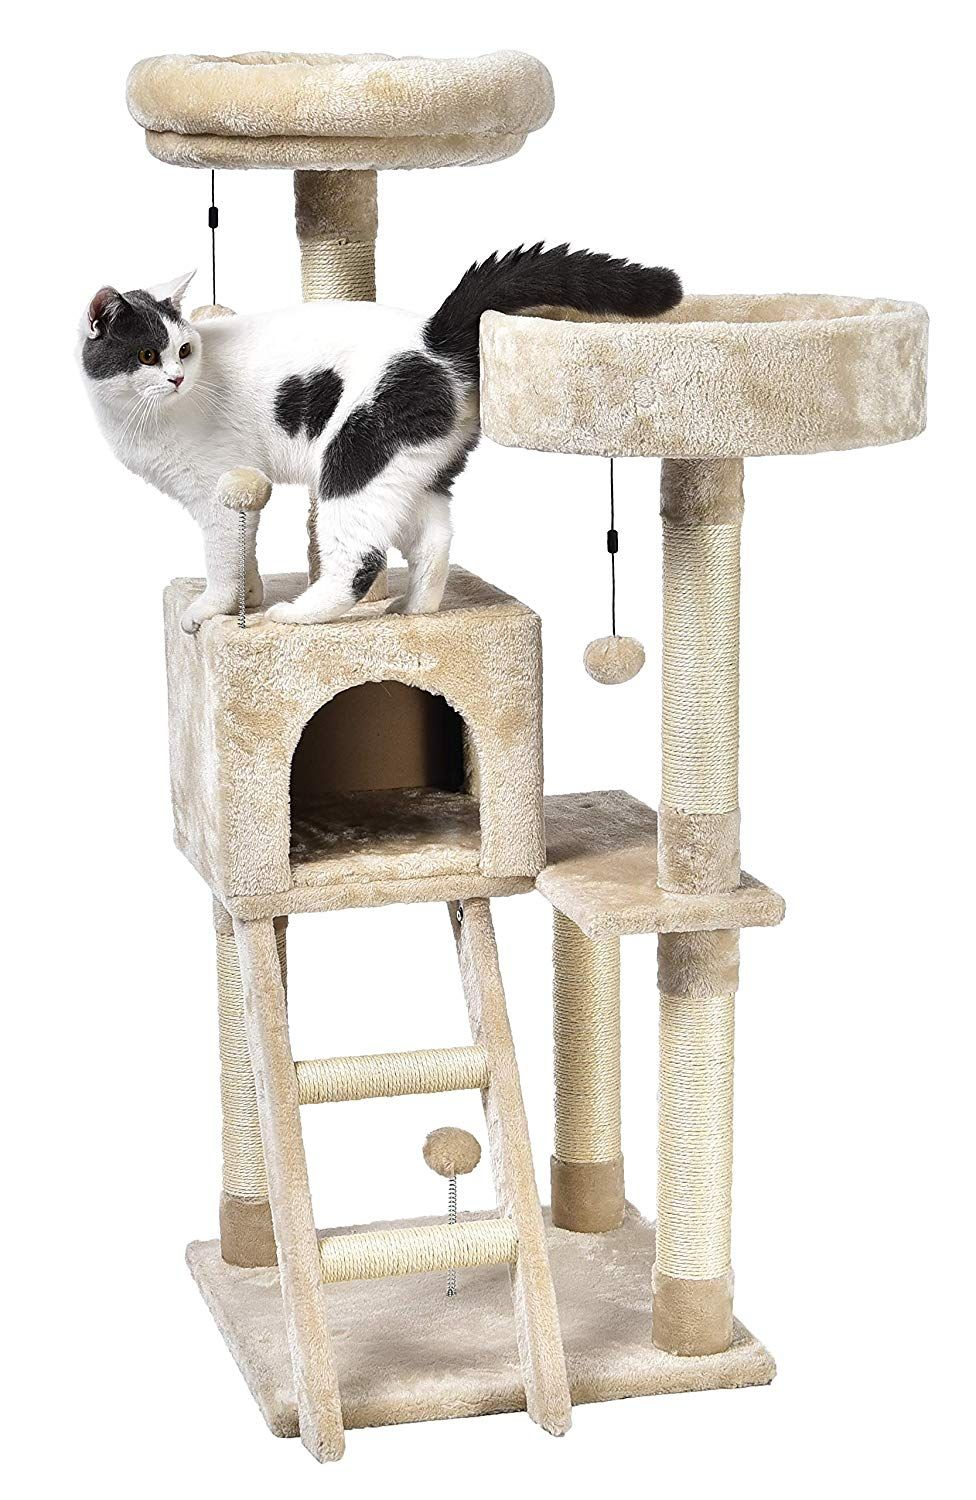 Creative cat tree plans let you ruin your felines rotten